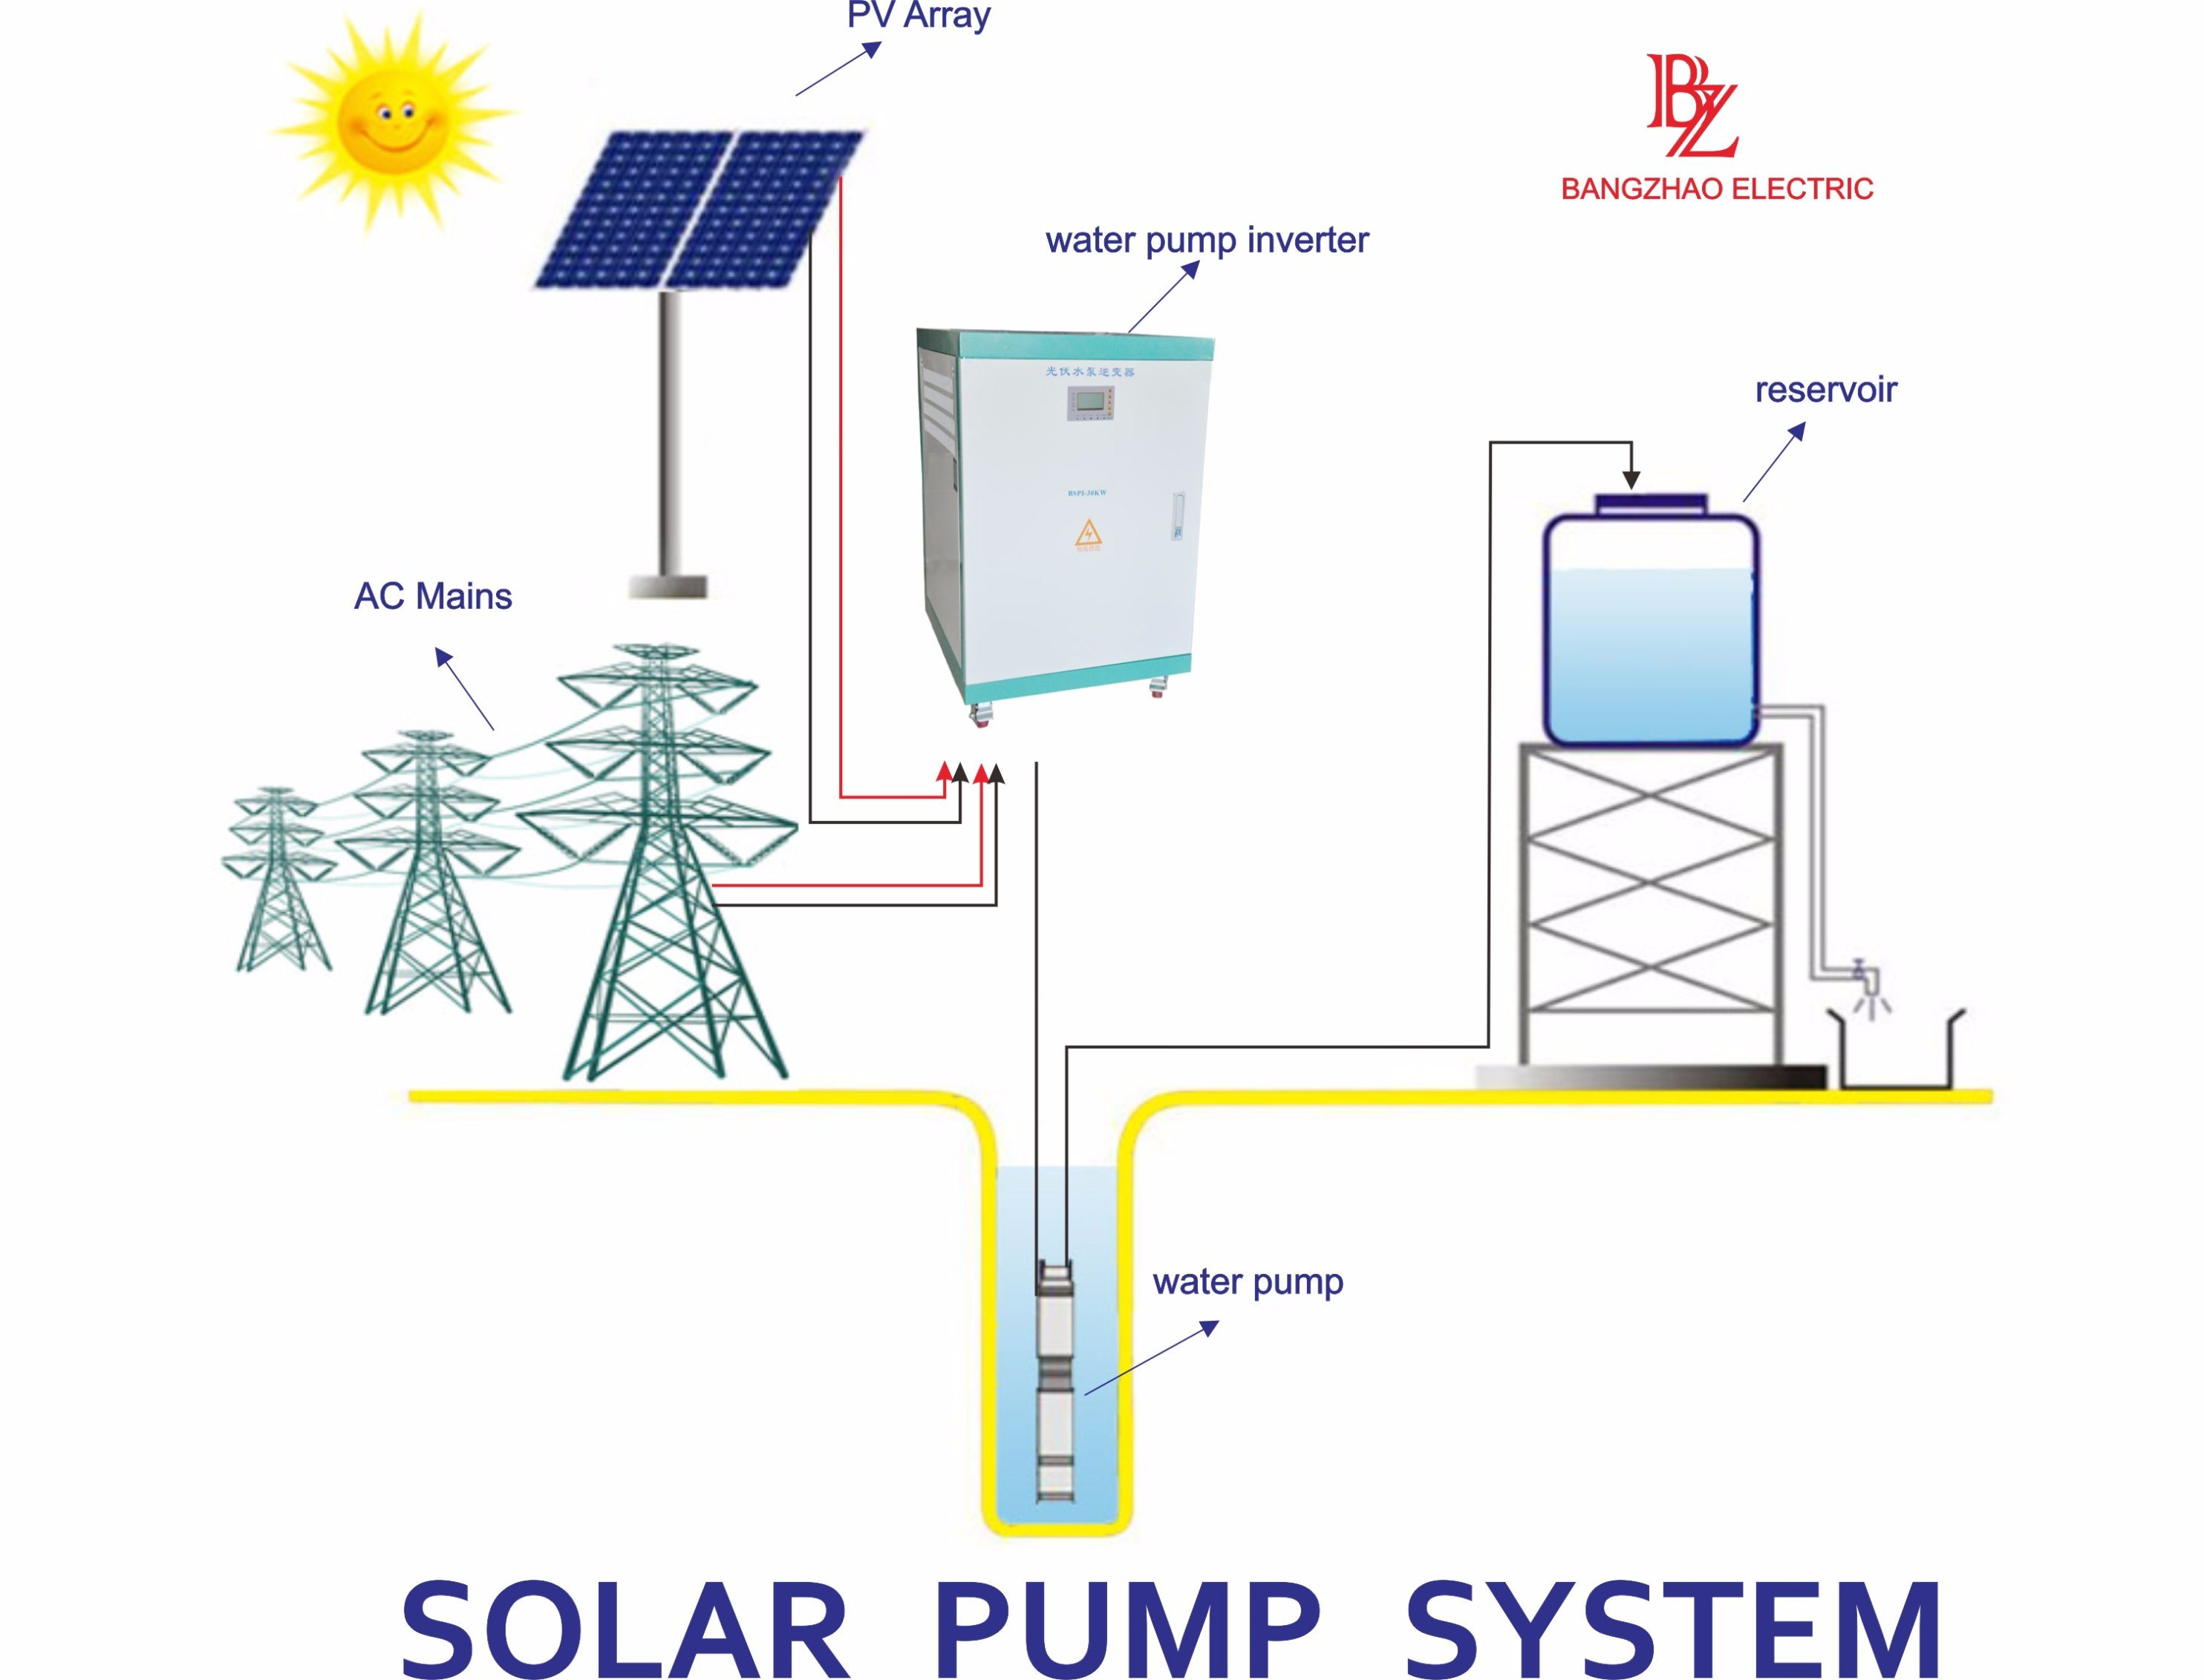 99.6% MPPT Efficient Three Phase 40kw Solar Pump Inverter for 3 Phase 40HP Pump Motor with Pure Sine Wave Output